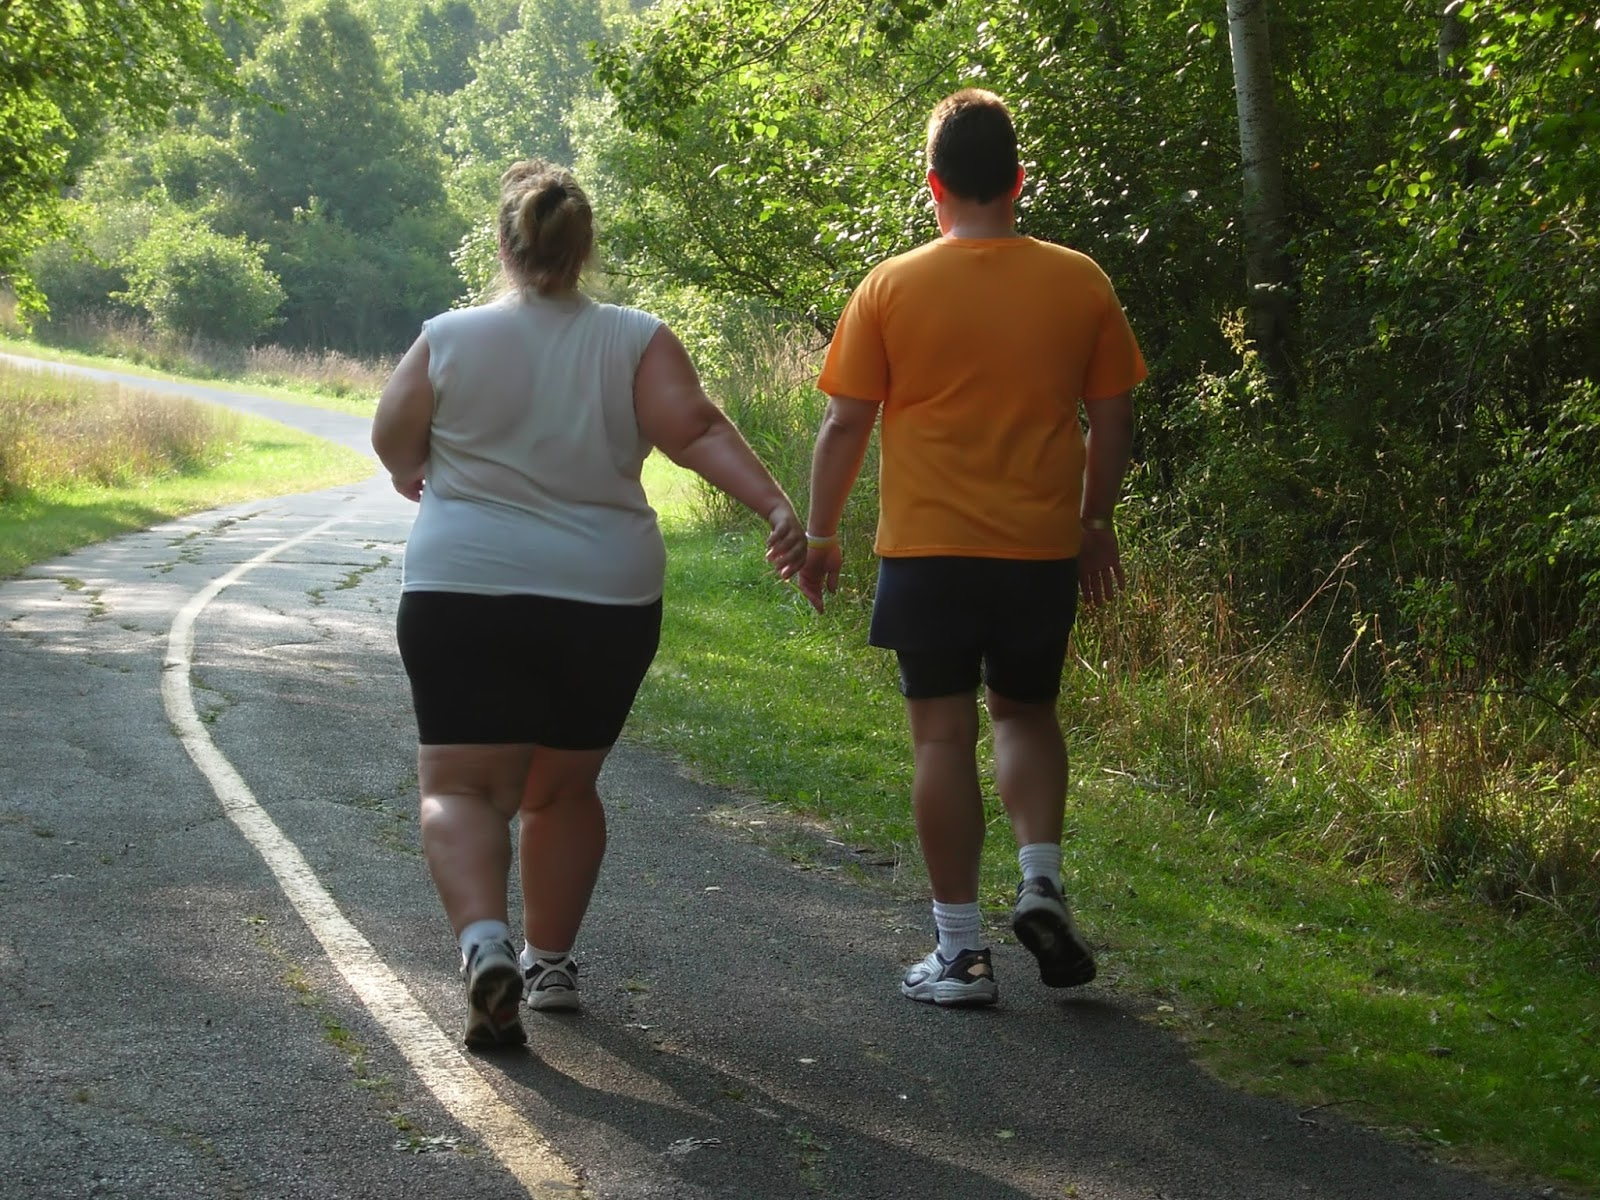 An overweight couple getting exercise and walking outside